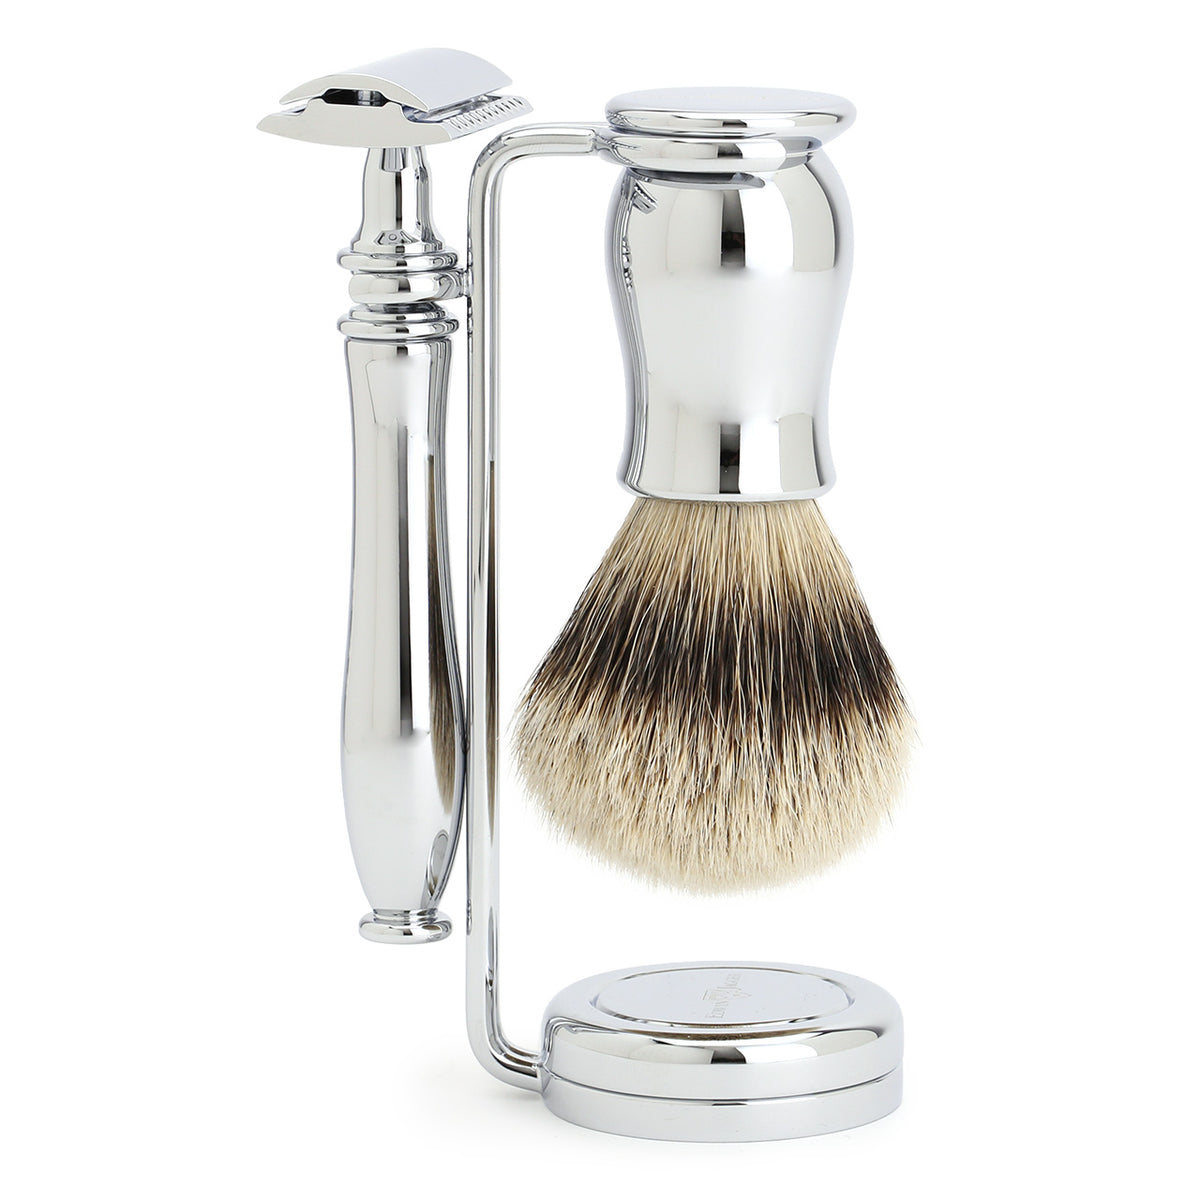 Edwin Jagger Chatsworth smooth chrome 3 piece set